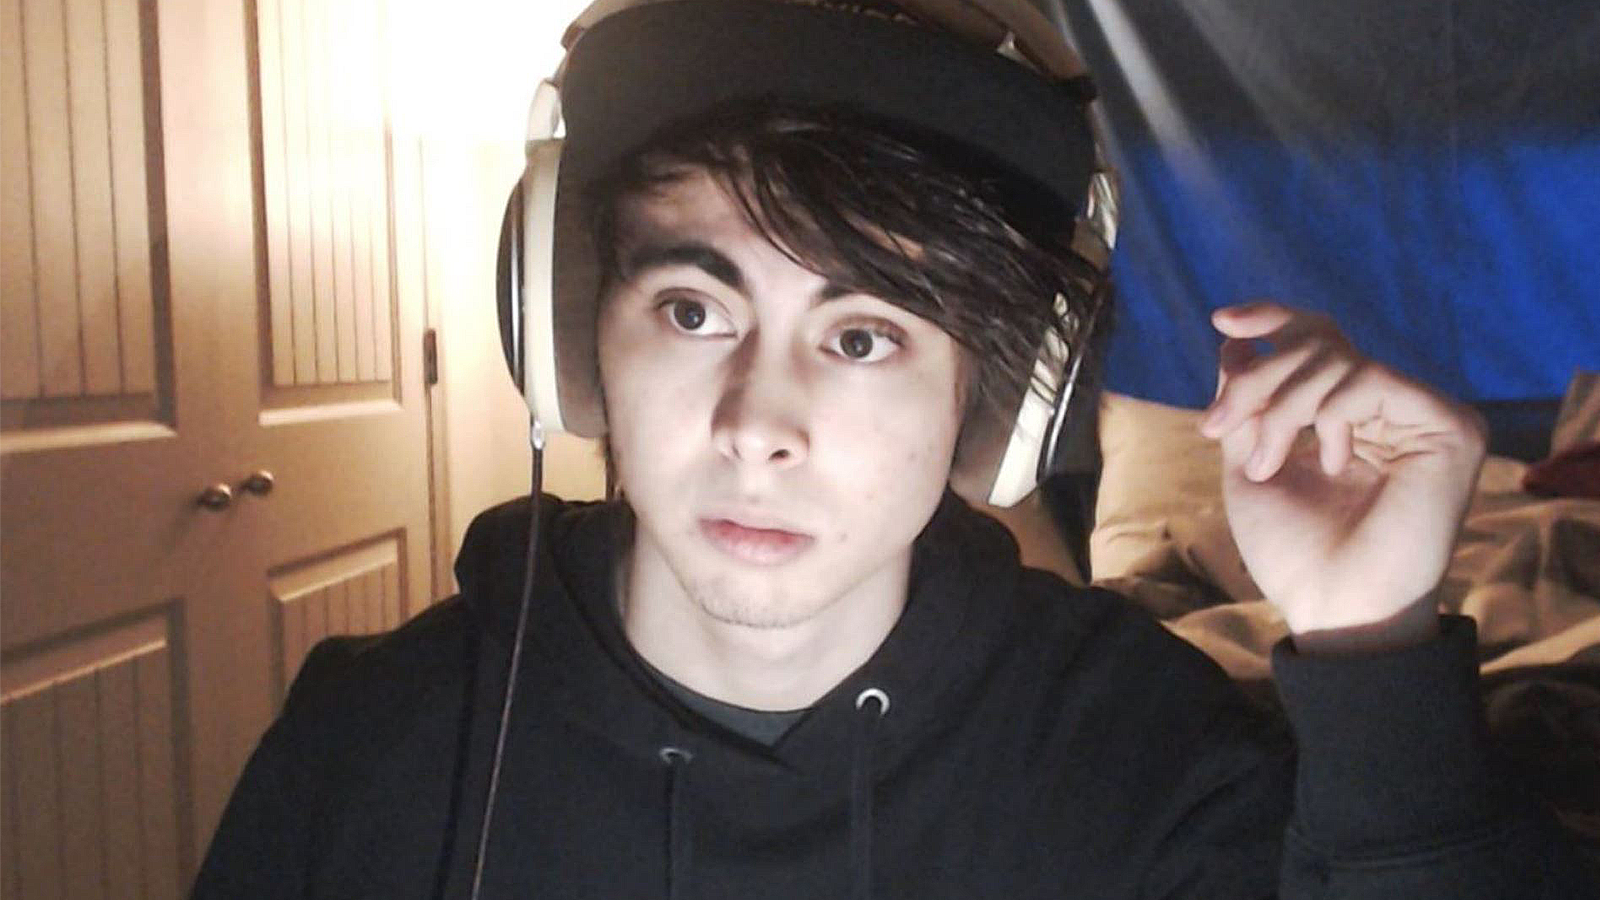 A selfie of LeafyIsHere